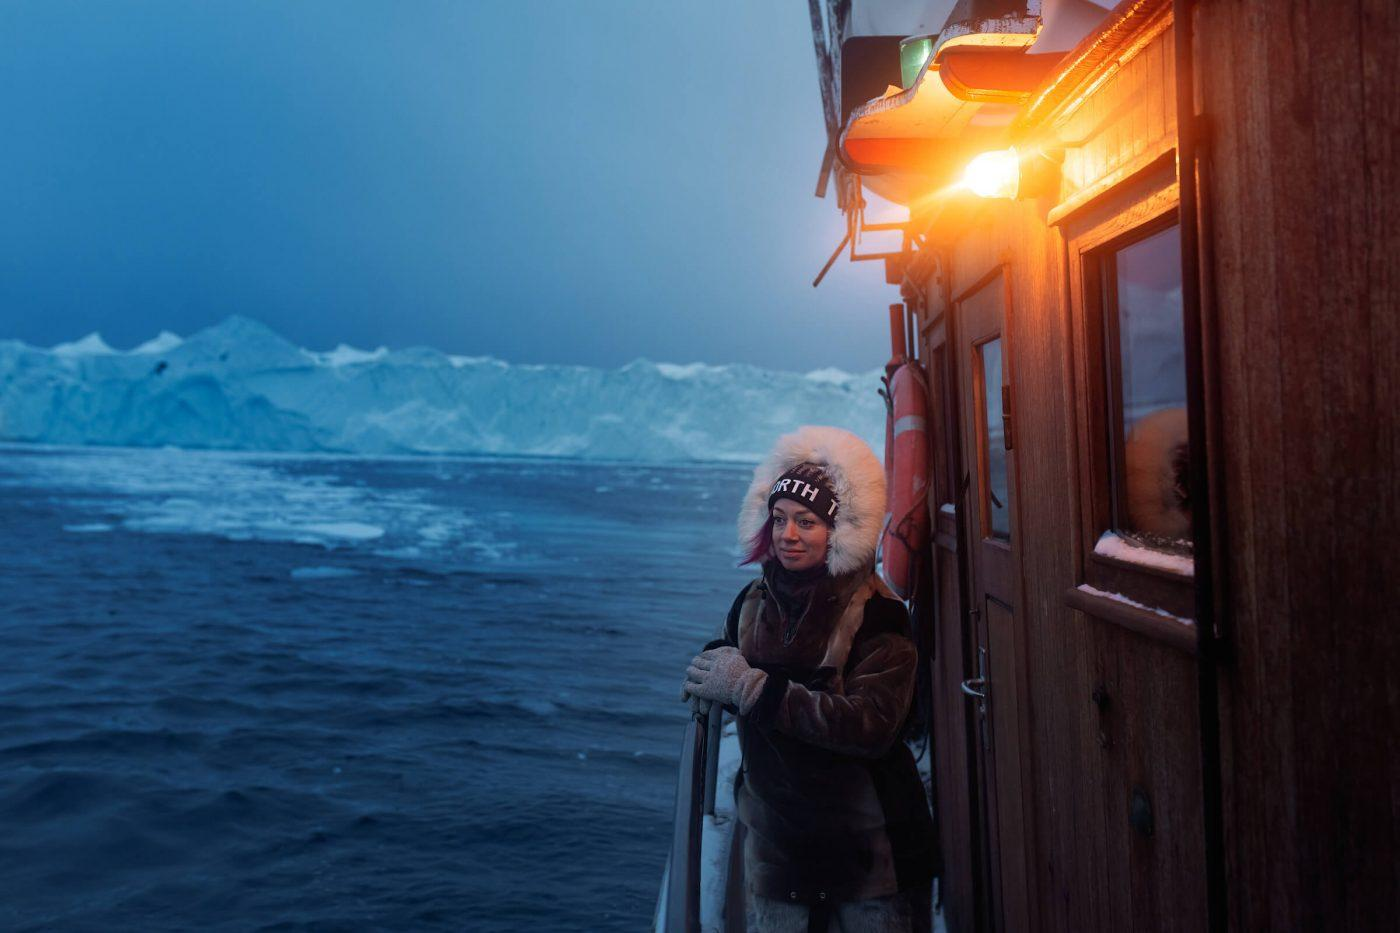 Canadian social media influencer Kristen Sarah on an iceberg boat tour in the Ilulissat icefjord in Greenland. By Rebecca Gustafsson